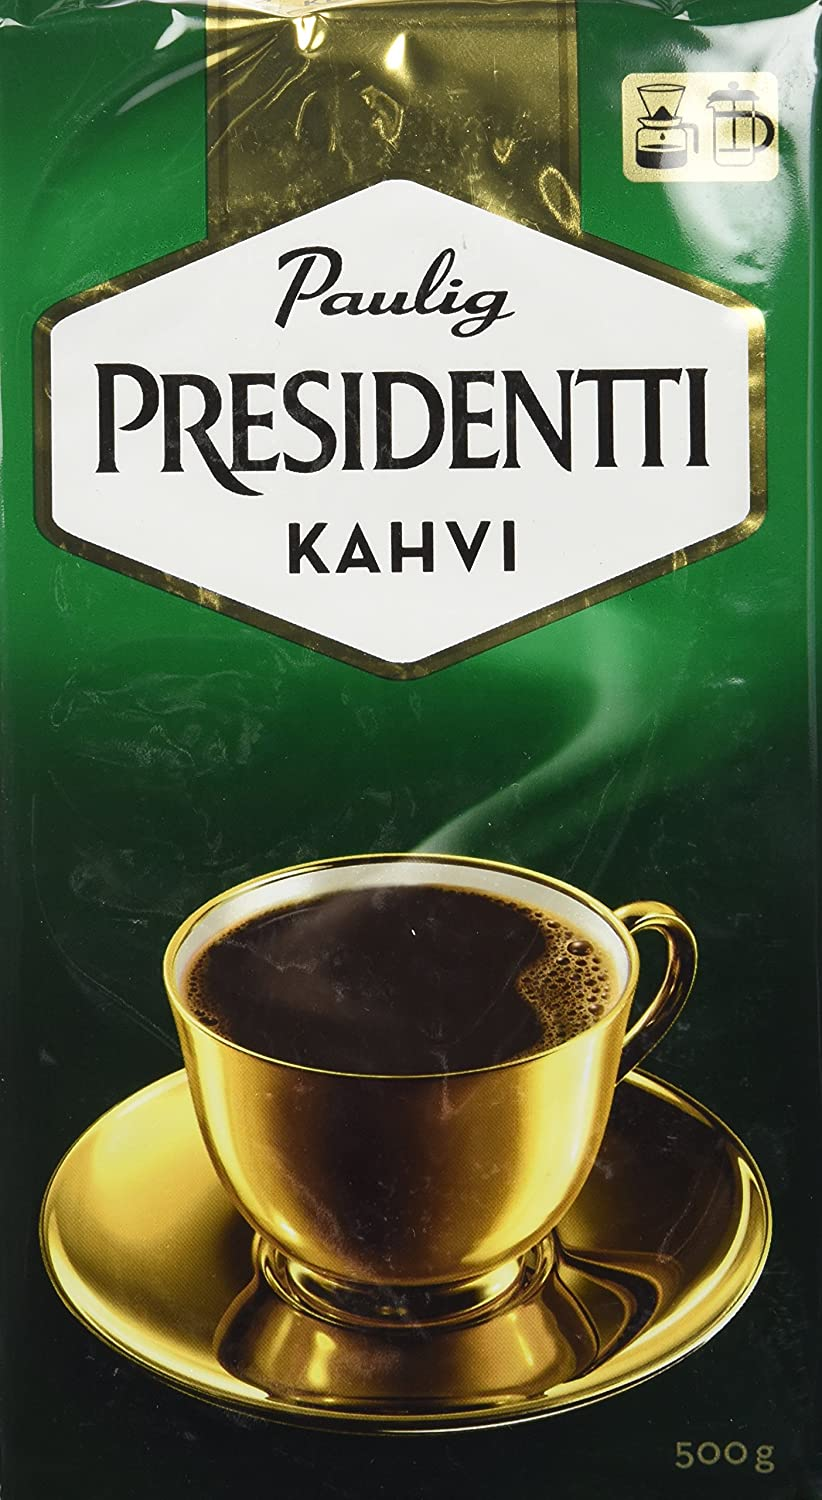 Paulig Presidentti Coffee Imported from Finland